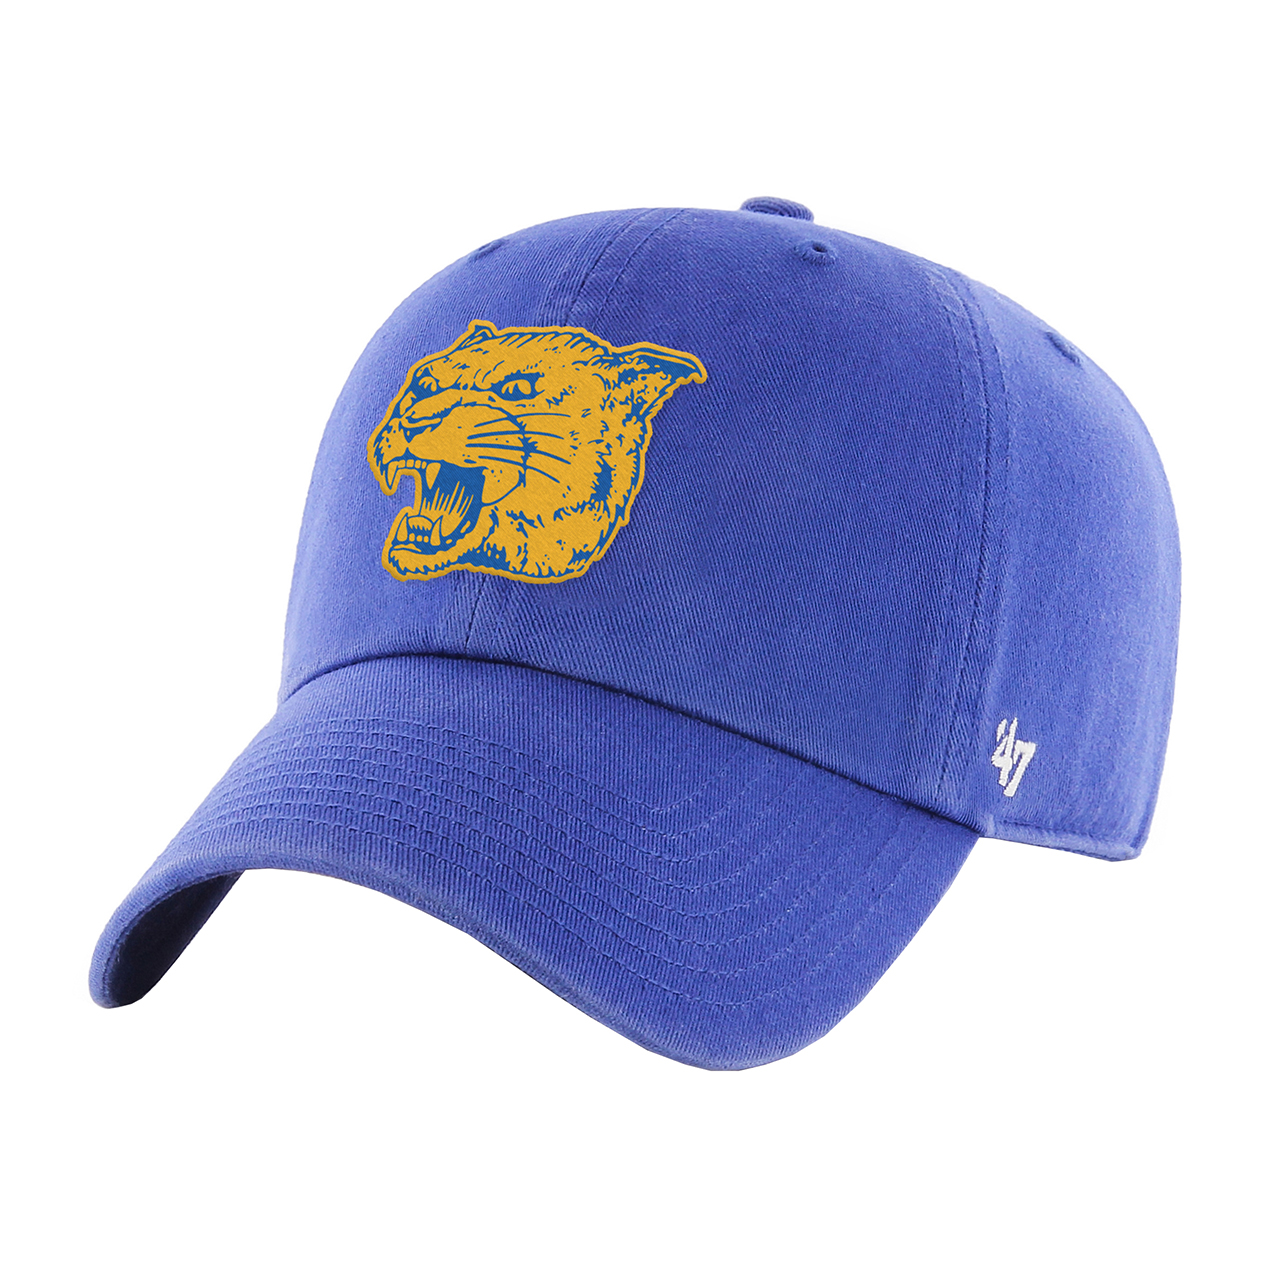 Hat 47 Brand Royal Panther